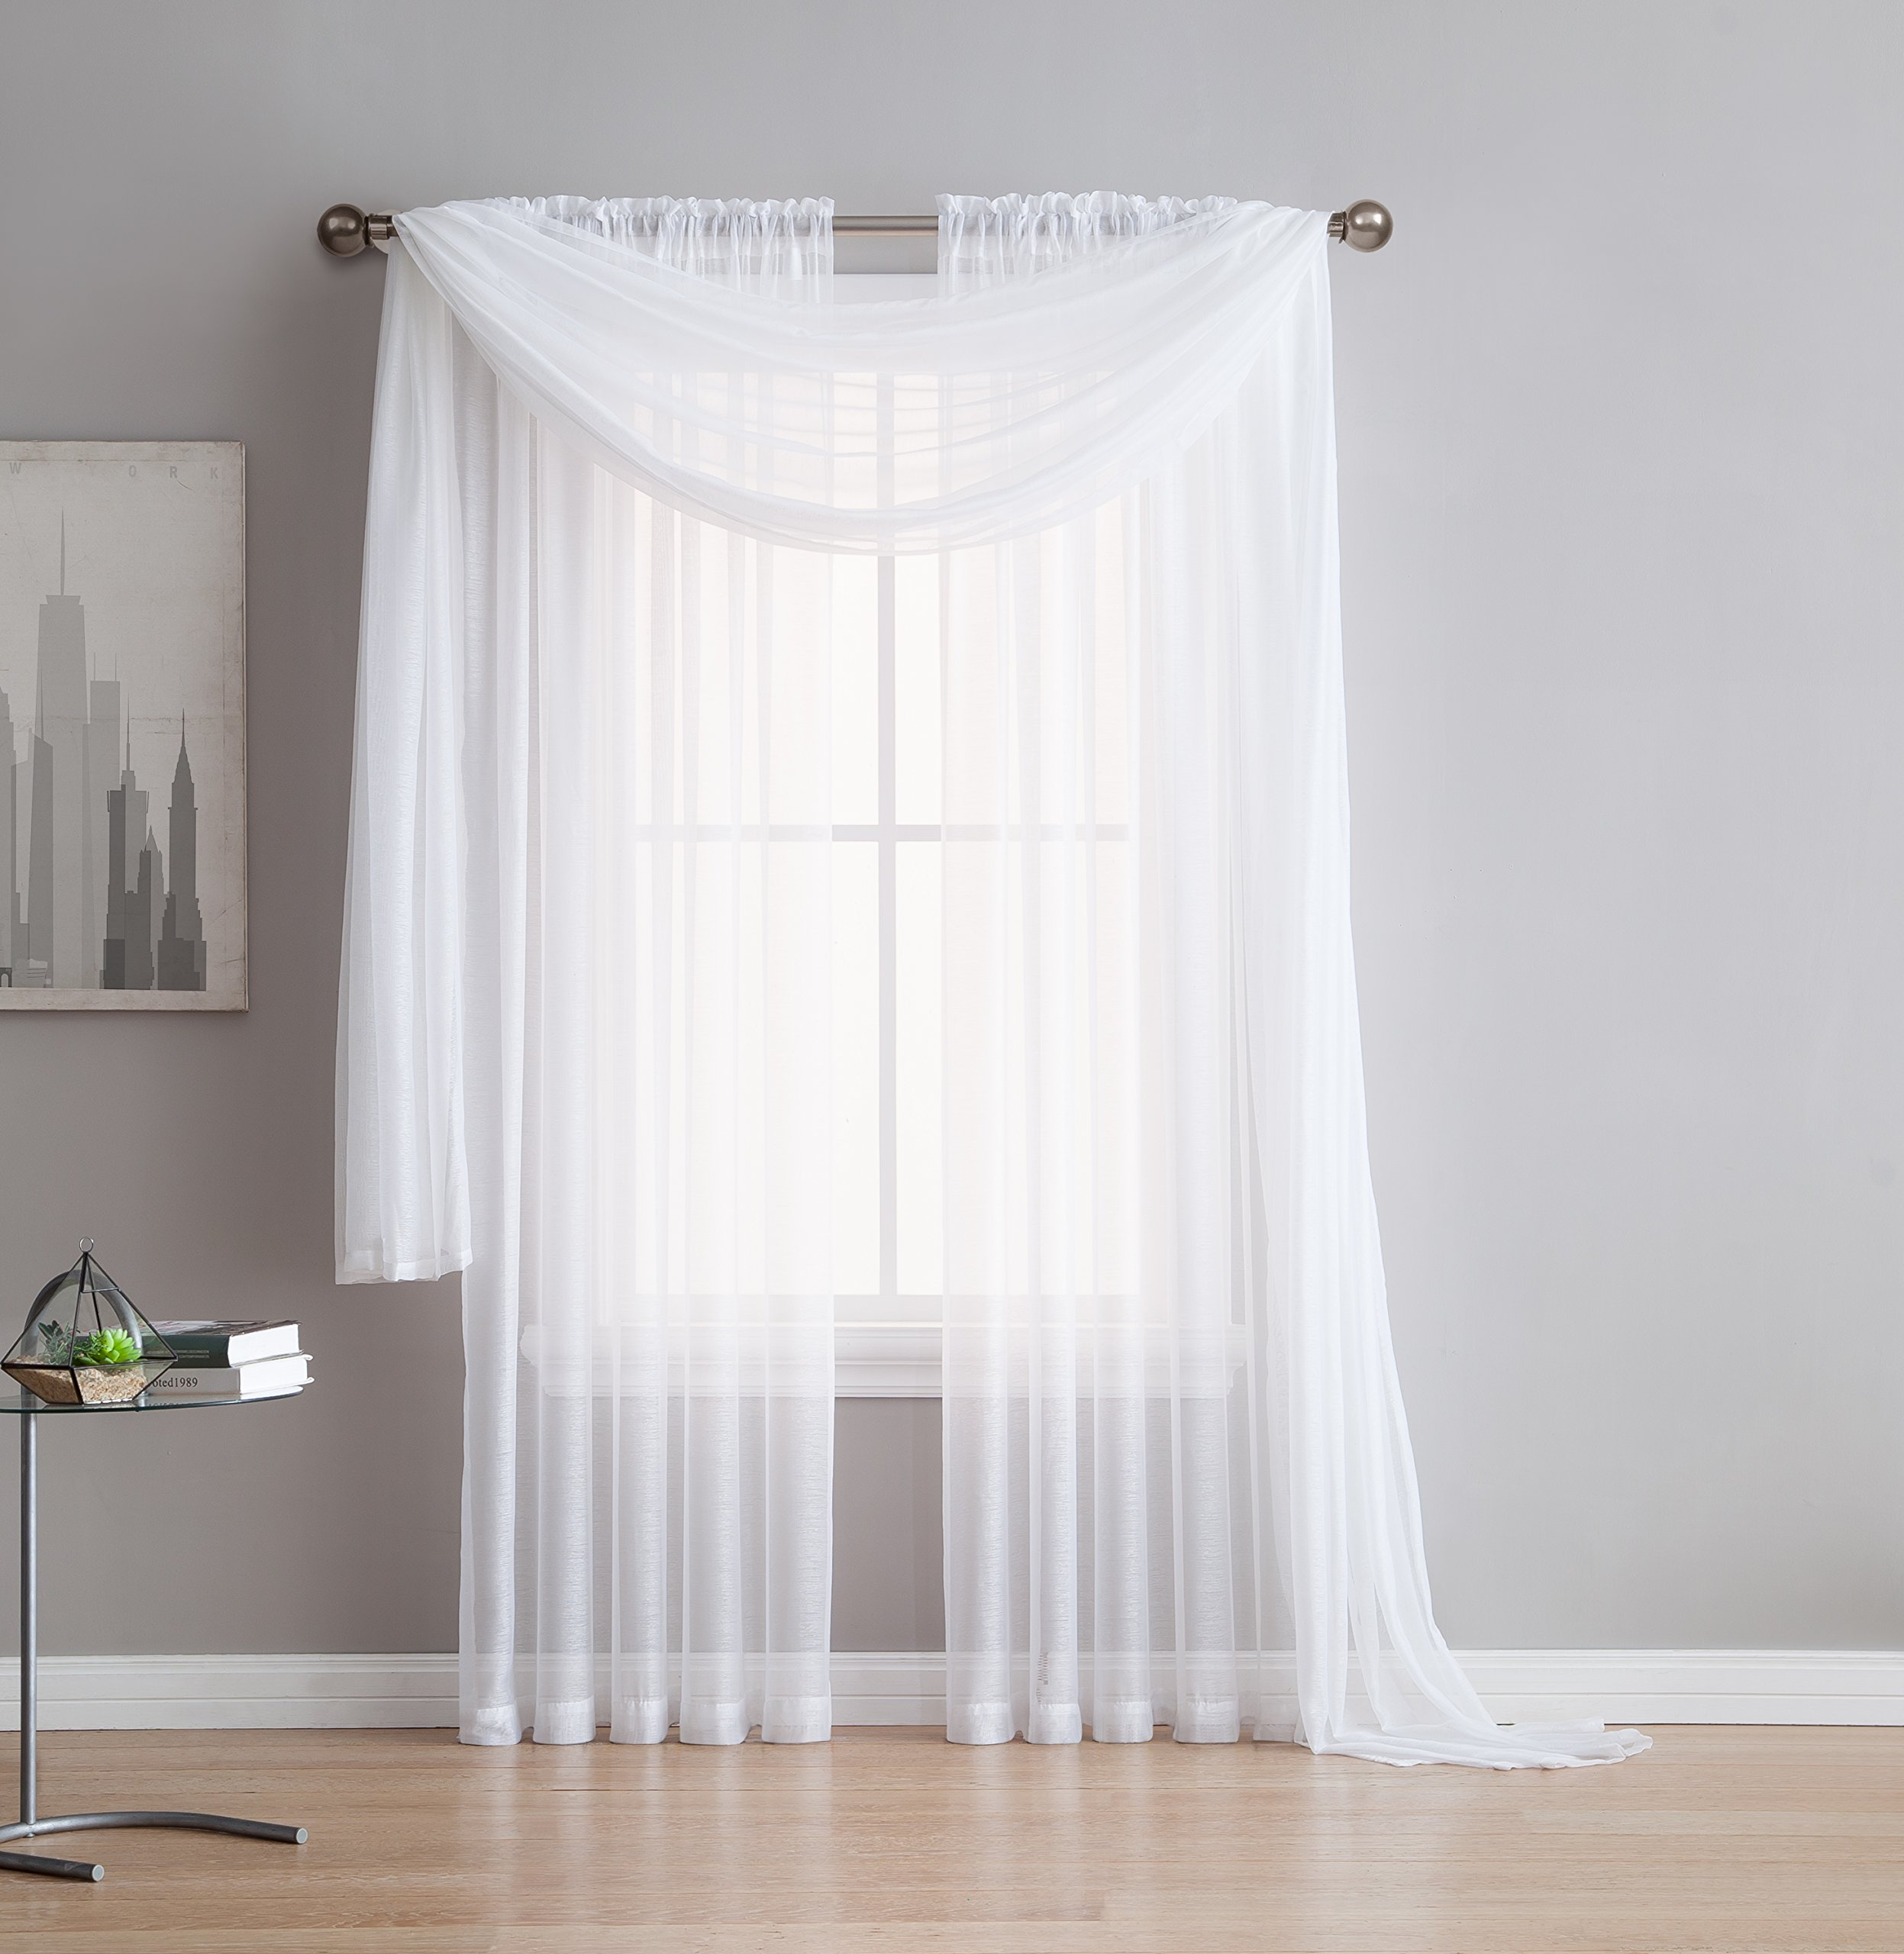 Jane - Rod Pocket Semi-Sheer Curtains - 2 Pieces - Total Size 108'' W x 108'' L - Natural Light Flow Material Durable Bedroom - Living Room - Kid's Room Kitchen (White)